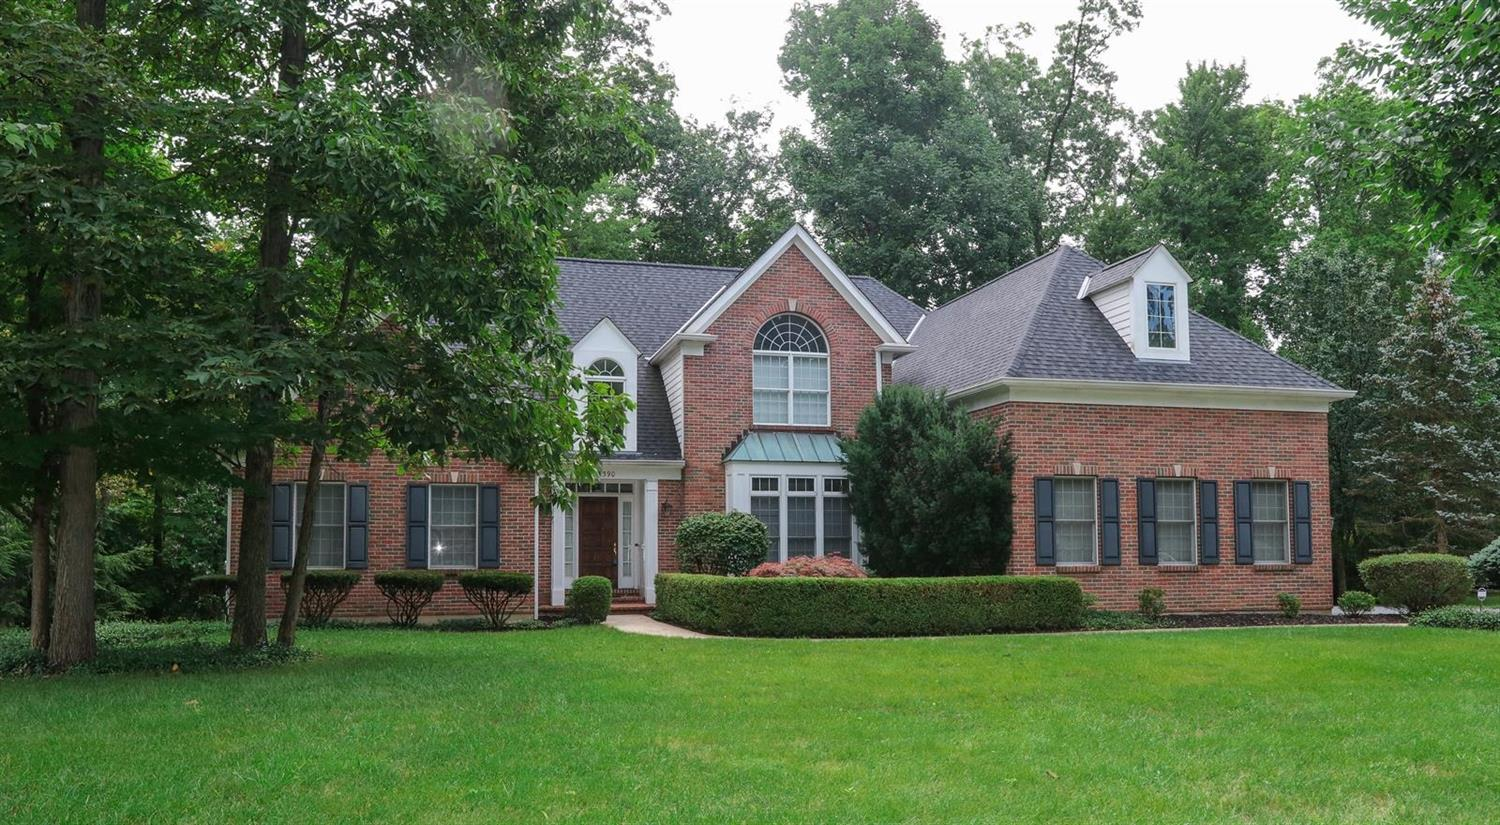 Property for sale at 11390 Brittany Woods Lane, Sycamore Twp,  Ohio 45249